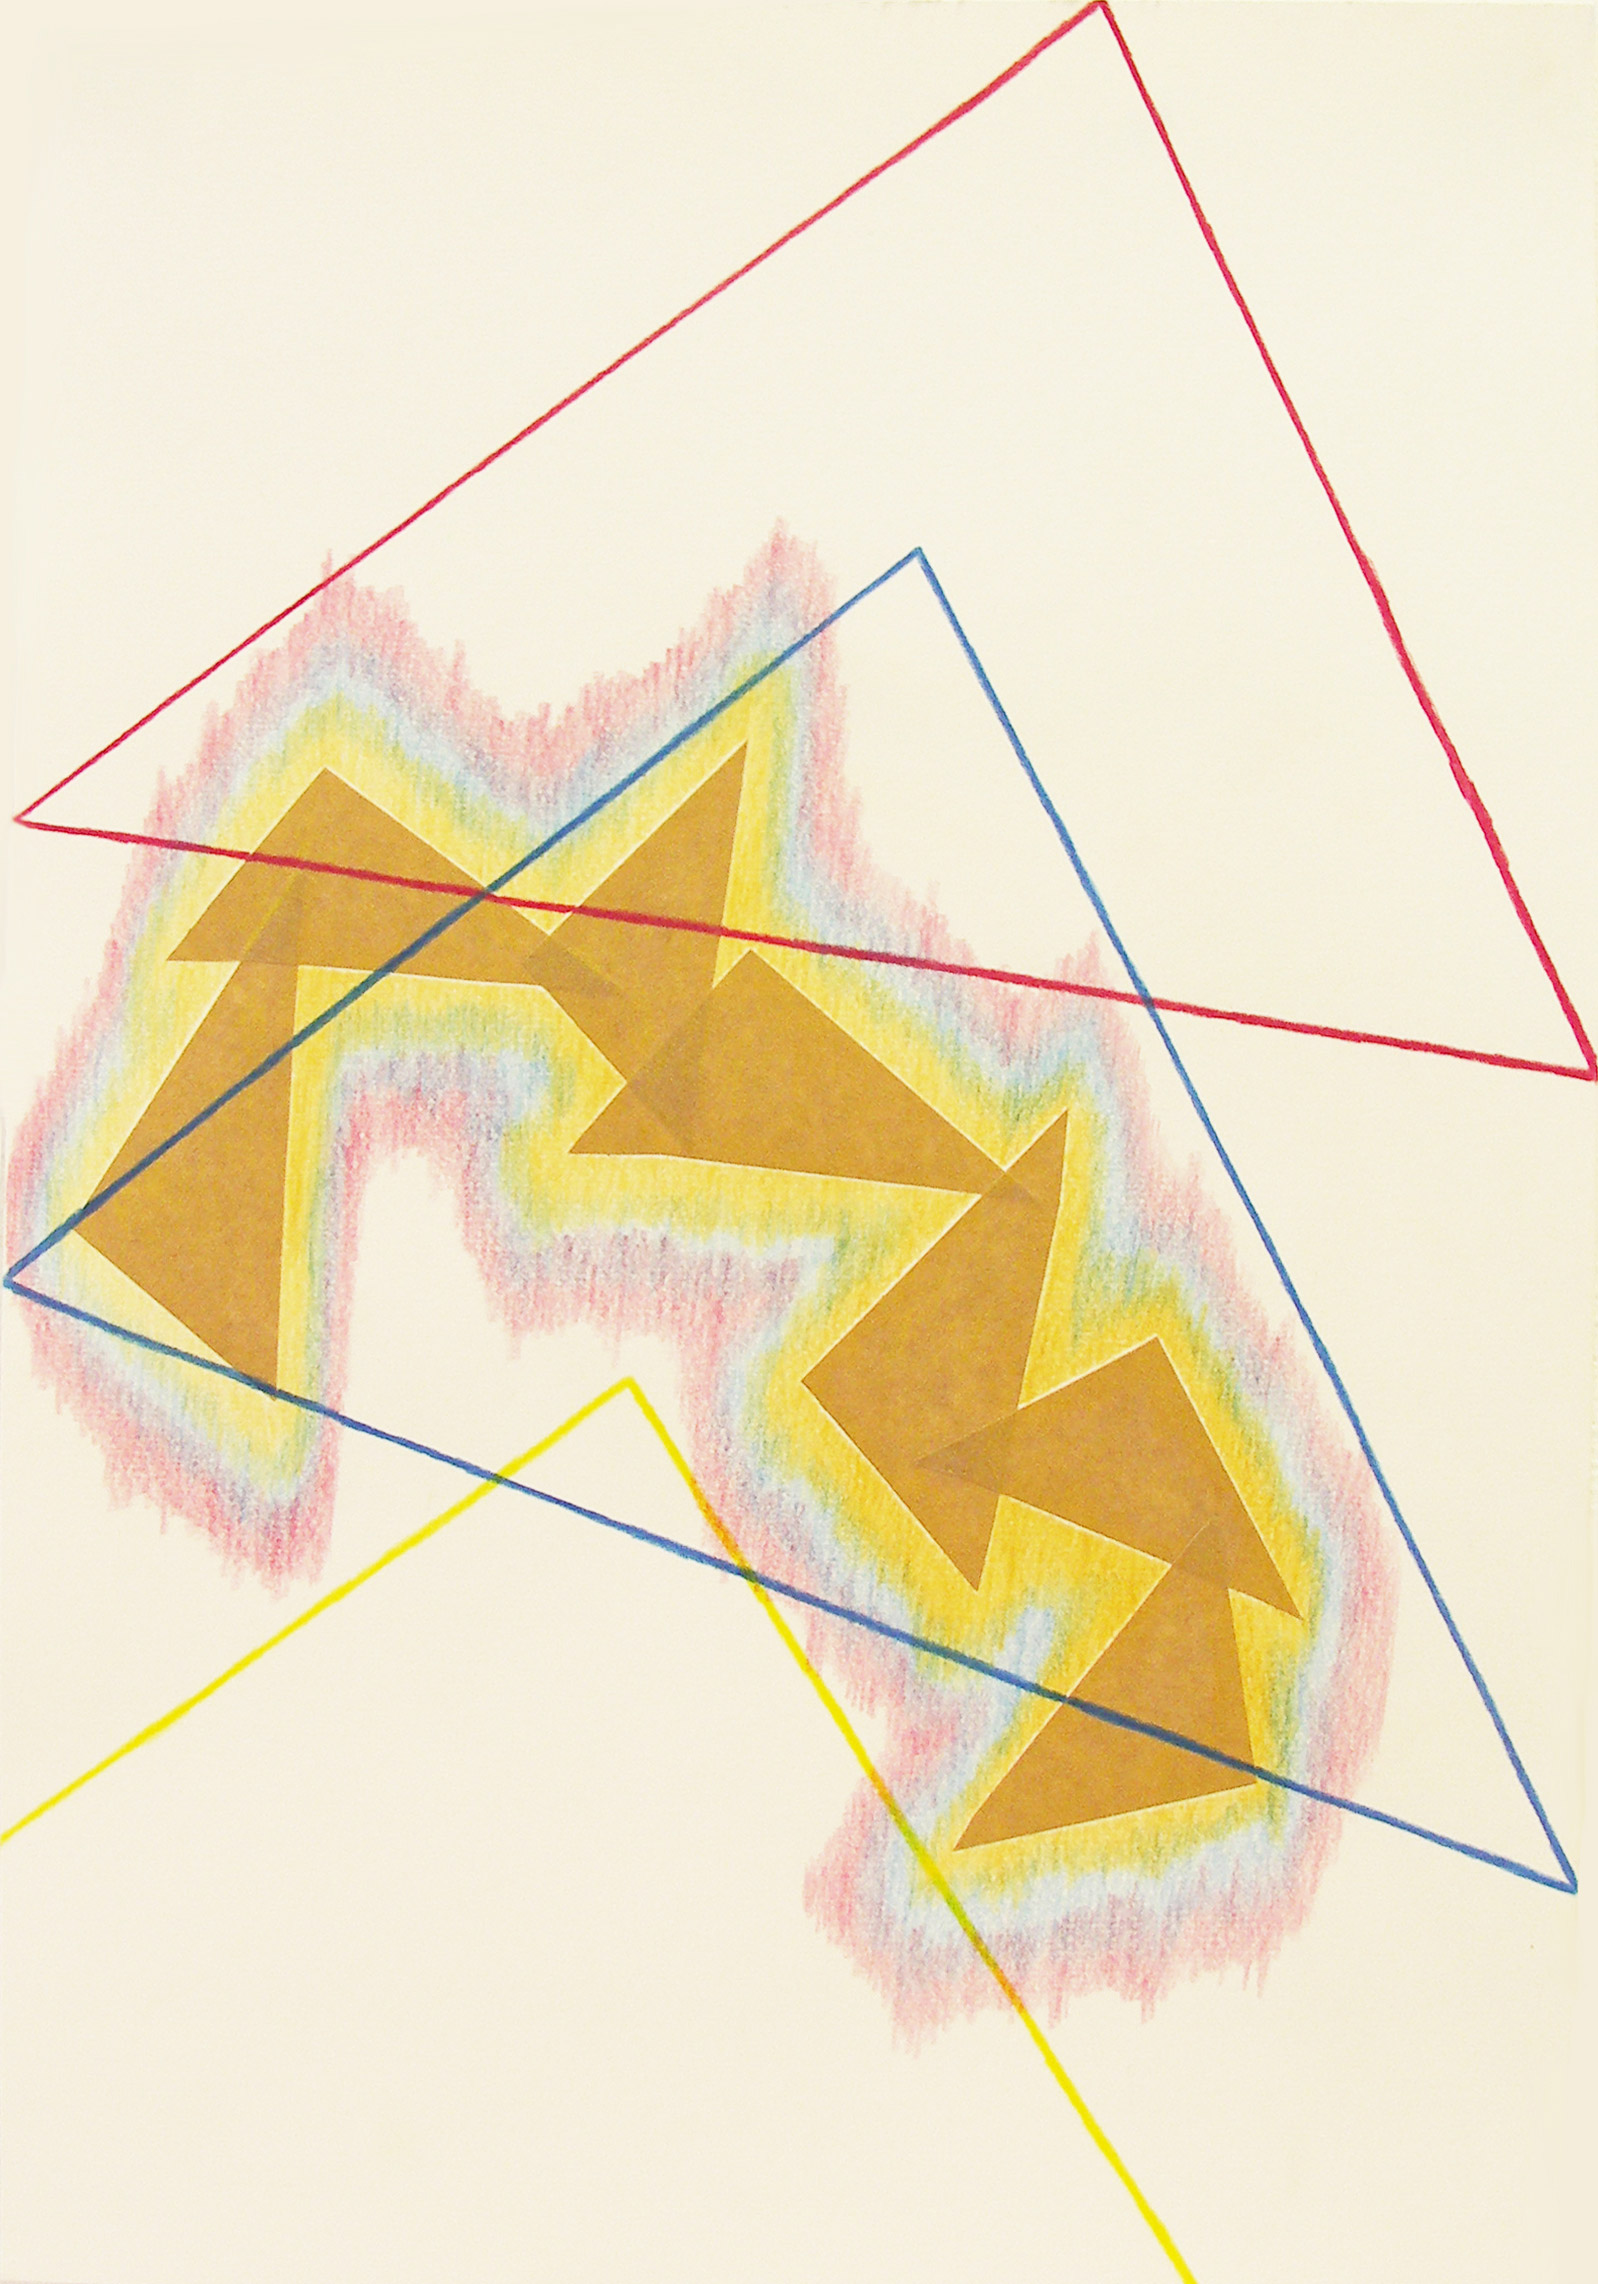 , 2011, Colored pencil and collage on paper, 42 x 29.7 cm, , unique artwork, Private collection, Paris, France